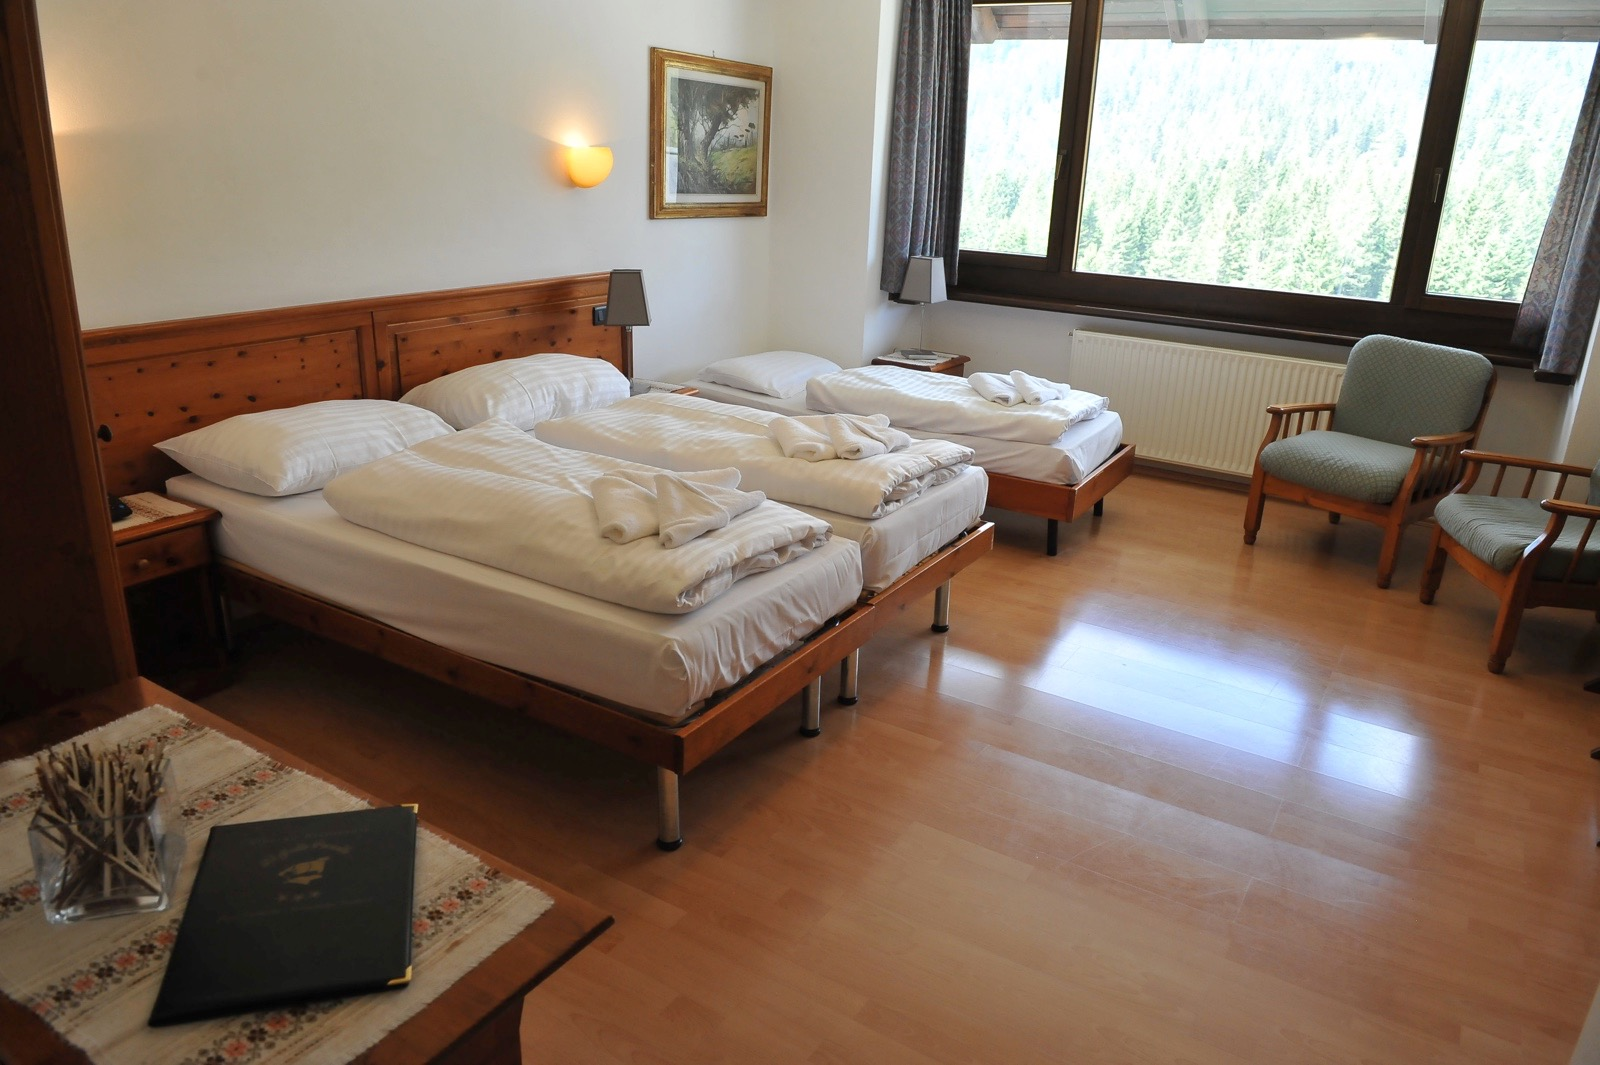 Al gallo Forcello hotel